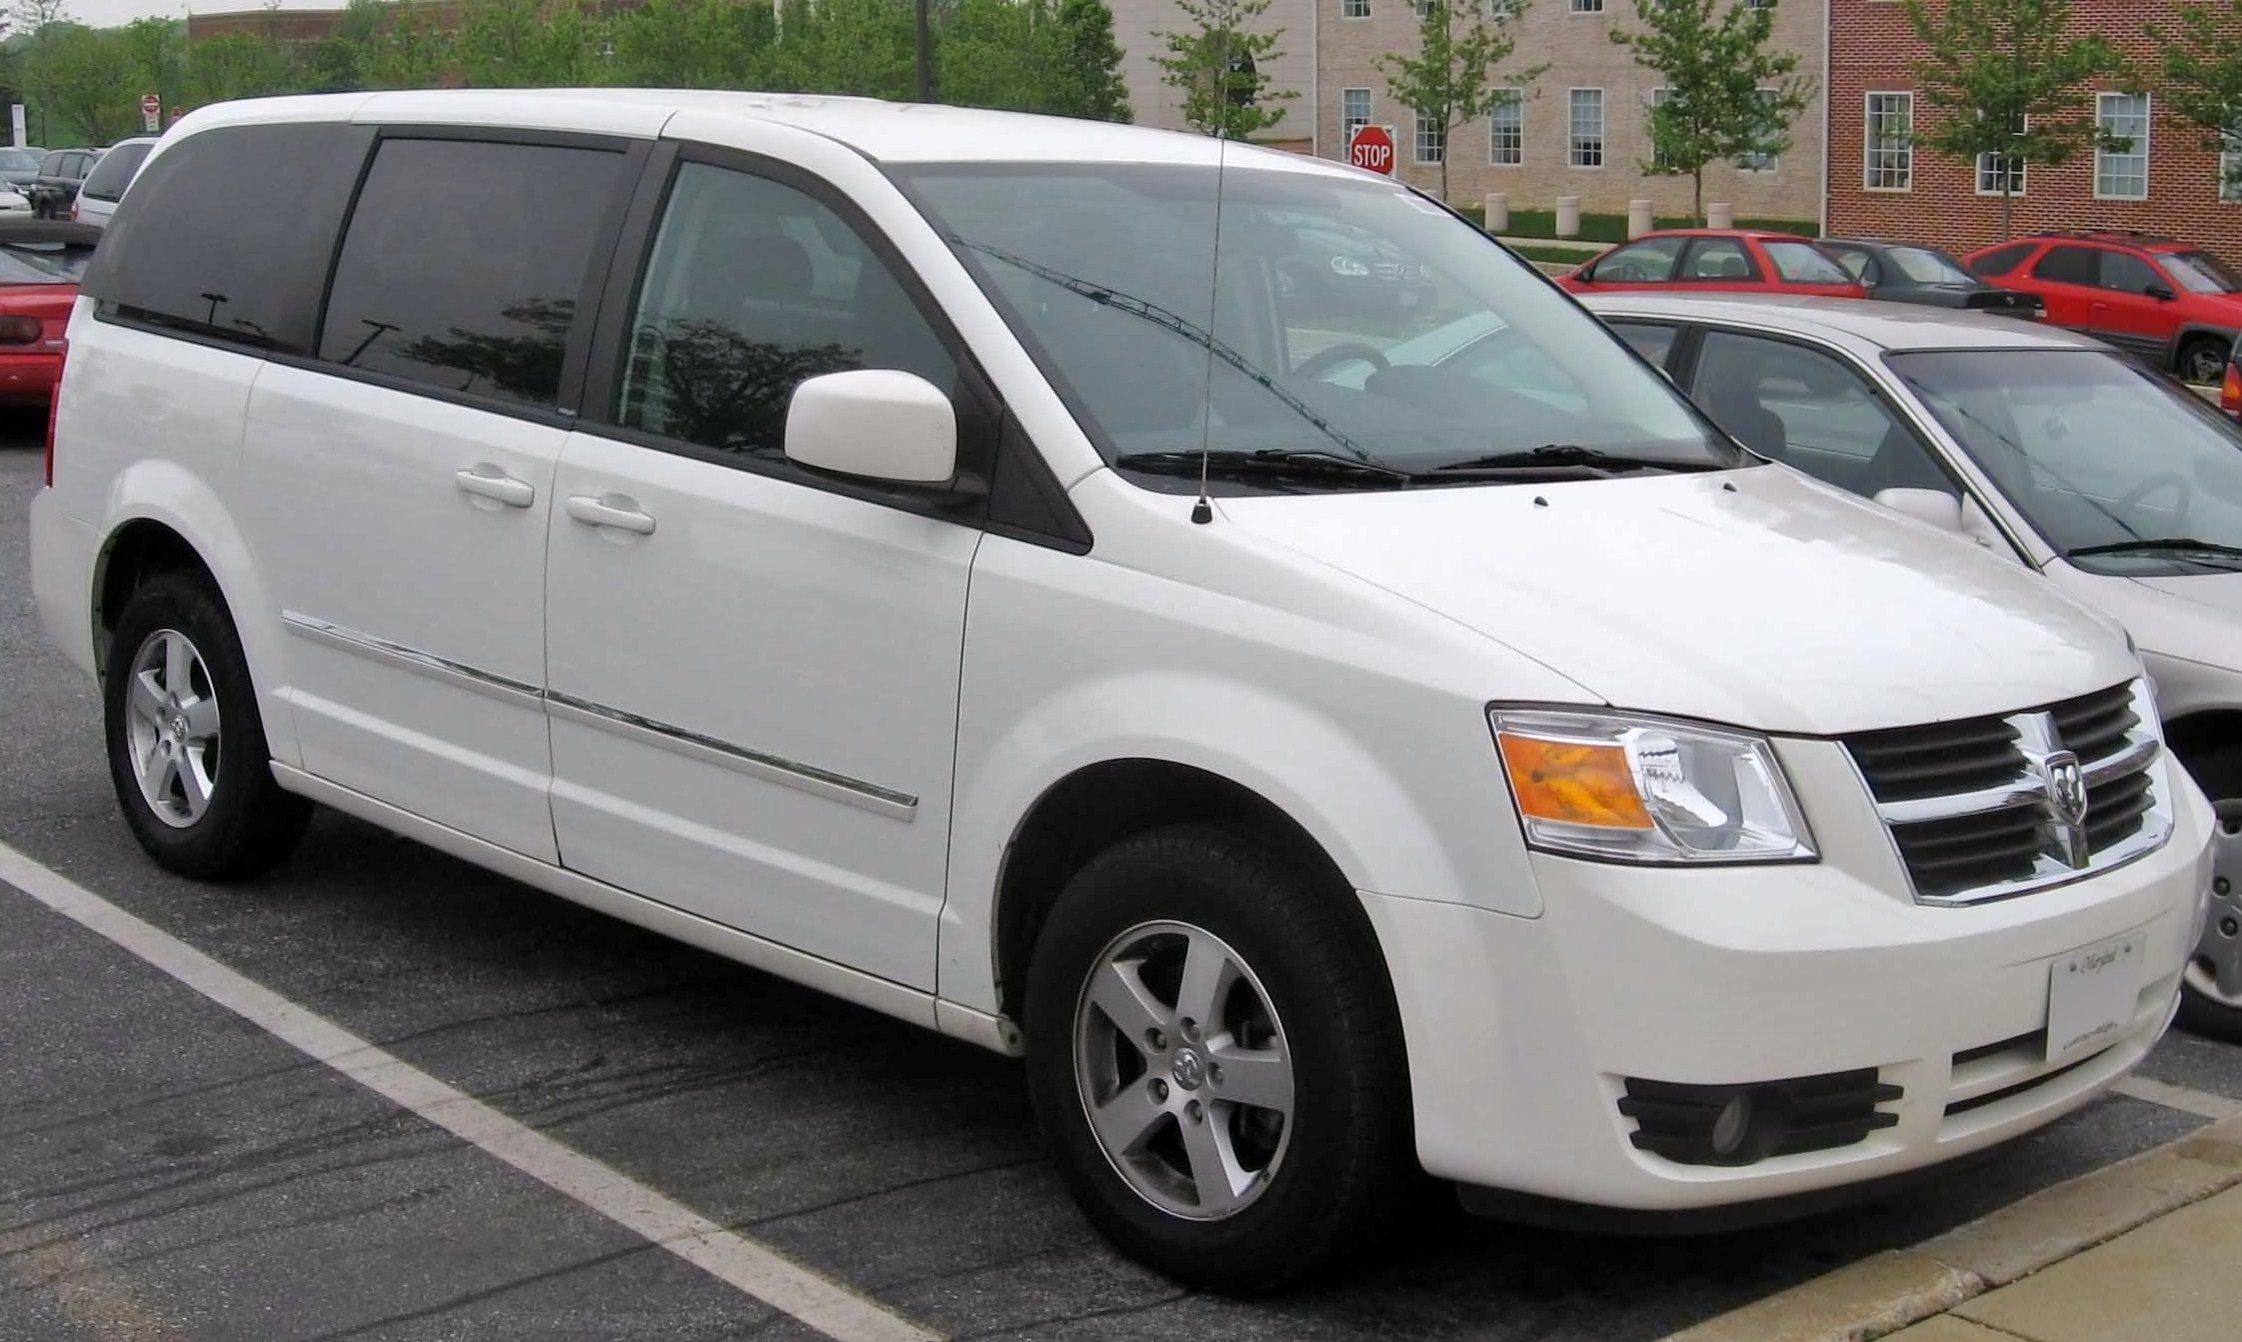 Town And Country Camper >> File:2008 Dodge Grand Caravan SXT.jpg - Wikimedia Commons